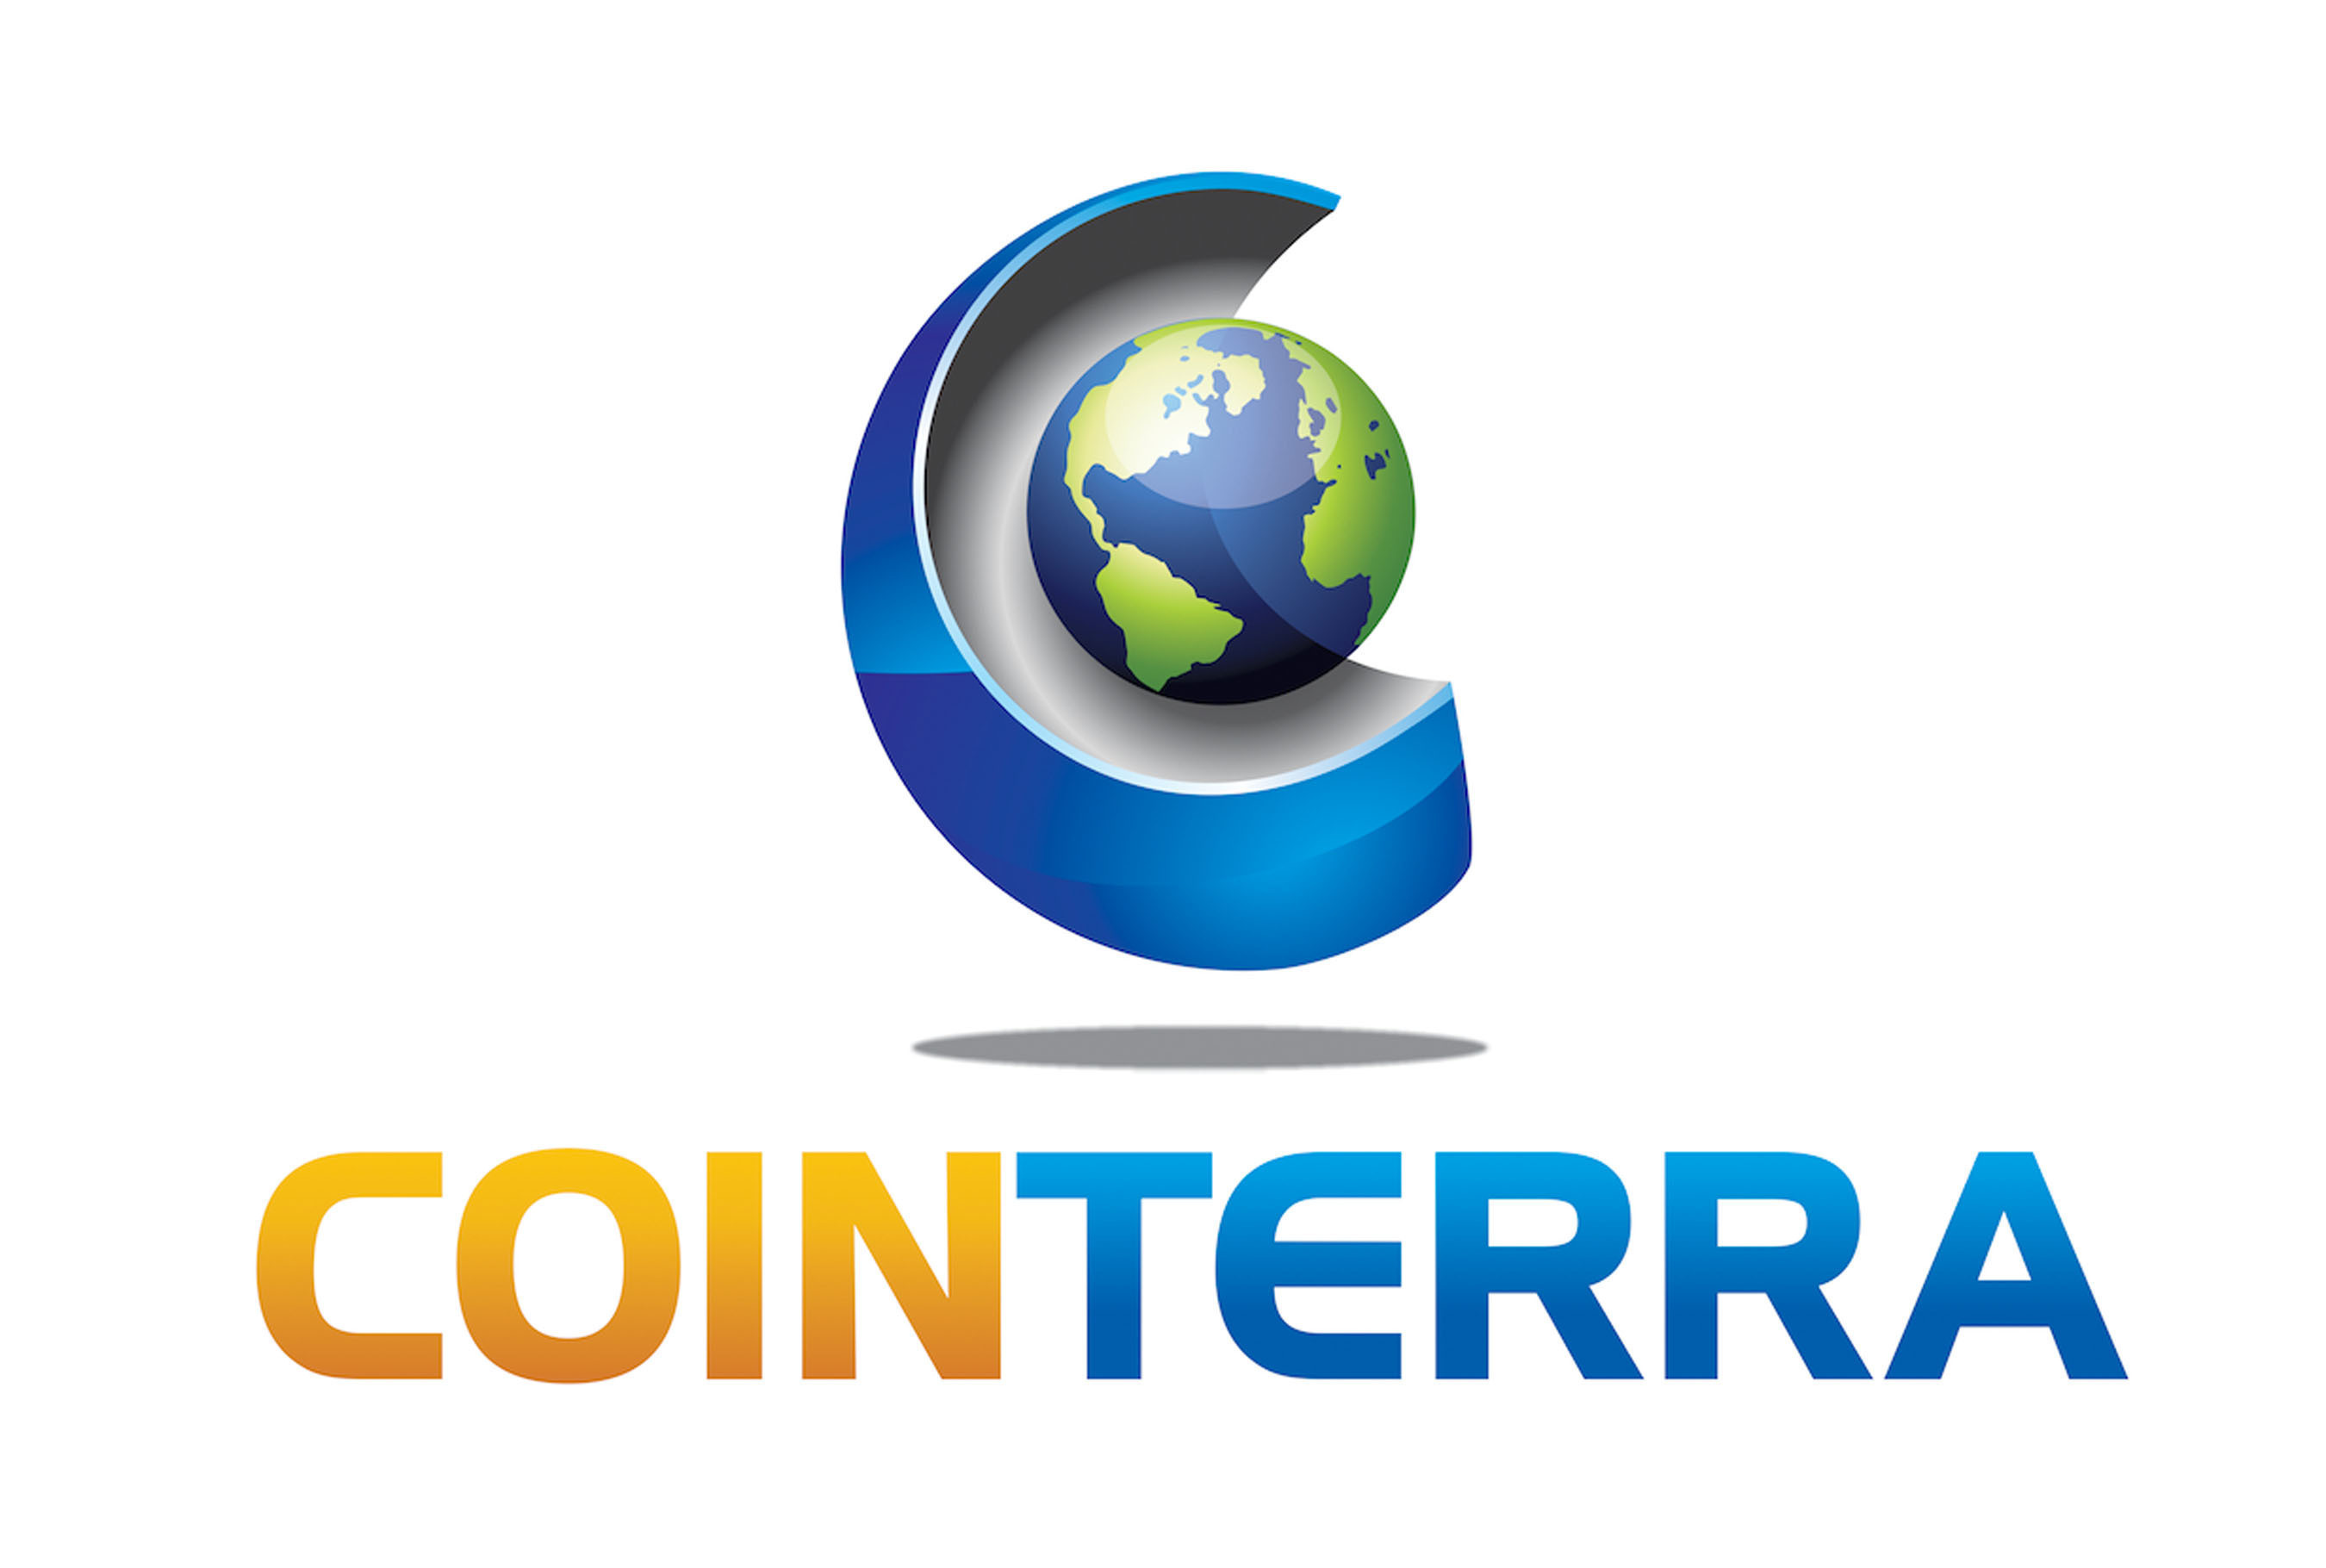 CoinTerra is currently one of the fastest-growing technology startups in the world. CoinTerra designs and produces best-in-class ASIC processors and systems for high-performance financial technology applications, with an initial focus on cryptocurrency and the Bitcoin ecosystem. Our state-of-the-art design methodologies and advanced architectures enable the delivery of Bitcoin mining solutions with the highest performance ASICs available on the market today. CoinTerra. Inc. http://cointerra.com. (PRNewsFoto/CoinTerra) (PRNewsFoto/COINTERRA)